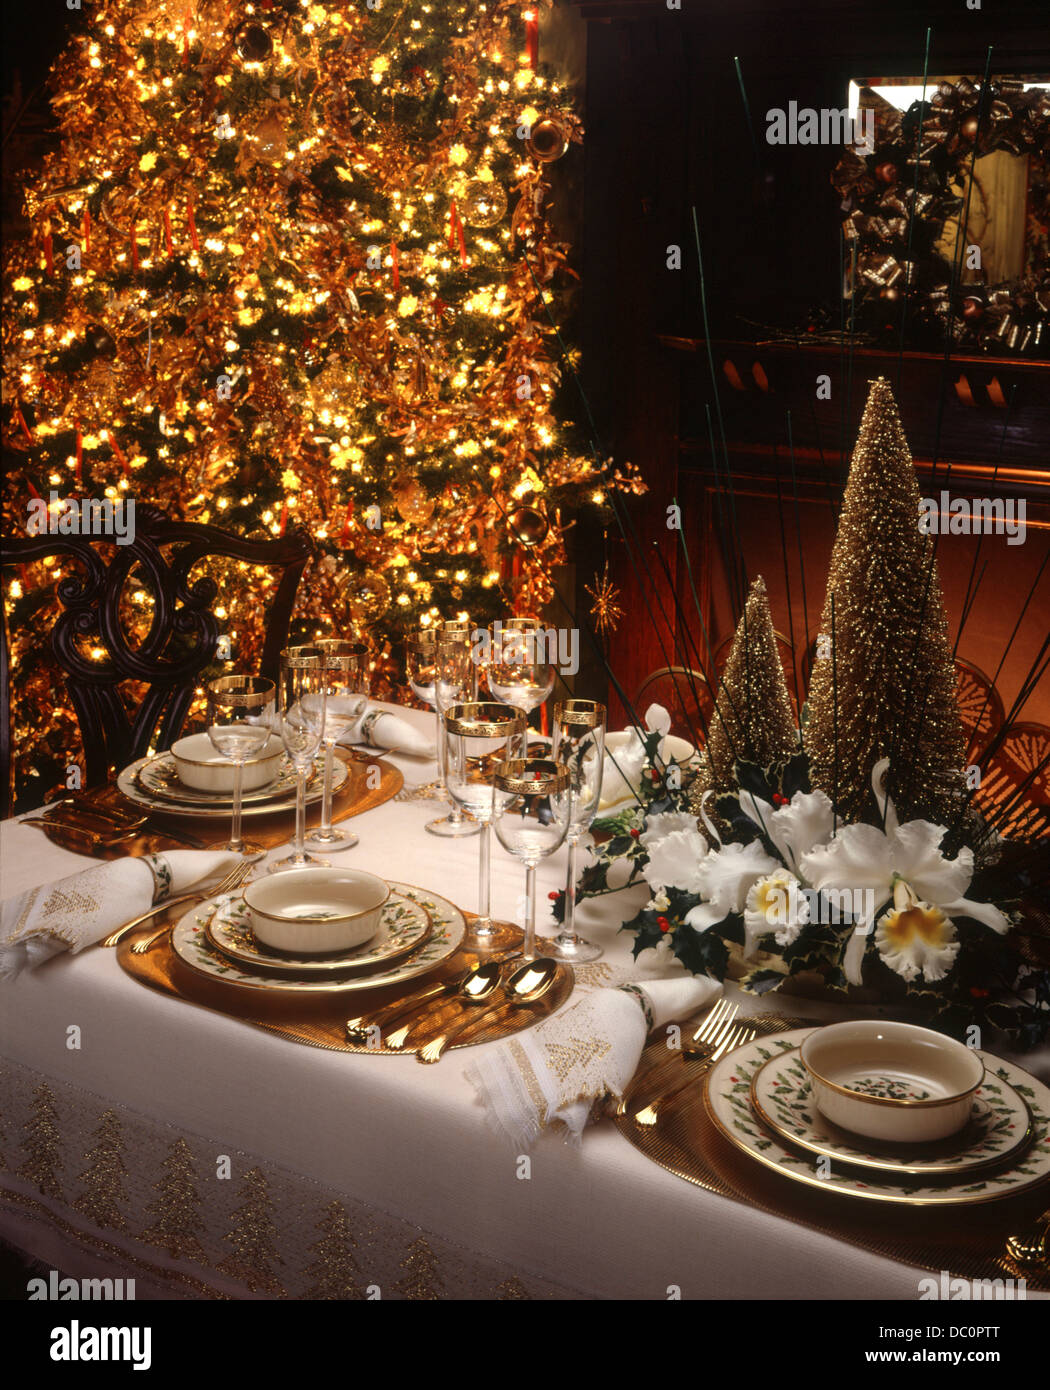 1980 1980s 1990 1990s ELEGANT CHRISTMAS TABLE SETTING GOLD TRIMMED TREE UPSCALE FESTIVE HOLDIAY PARTY CHINA PLATES : elegant christmas table settings - pezcame.com